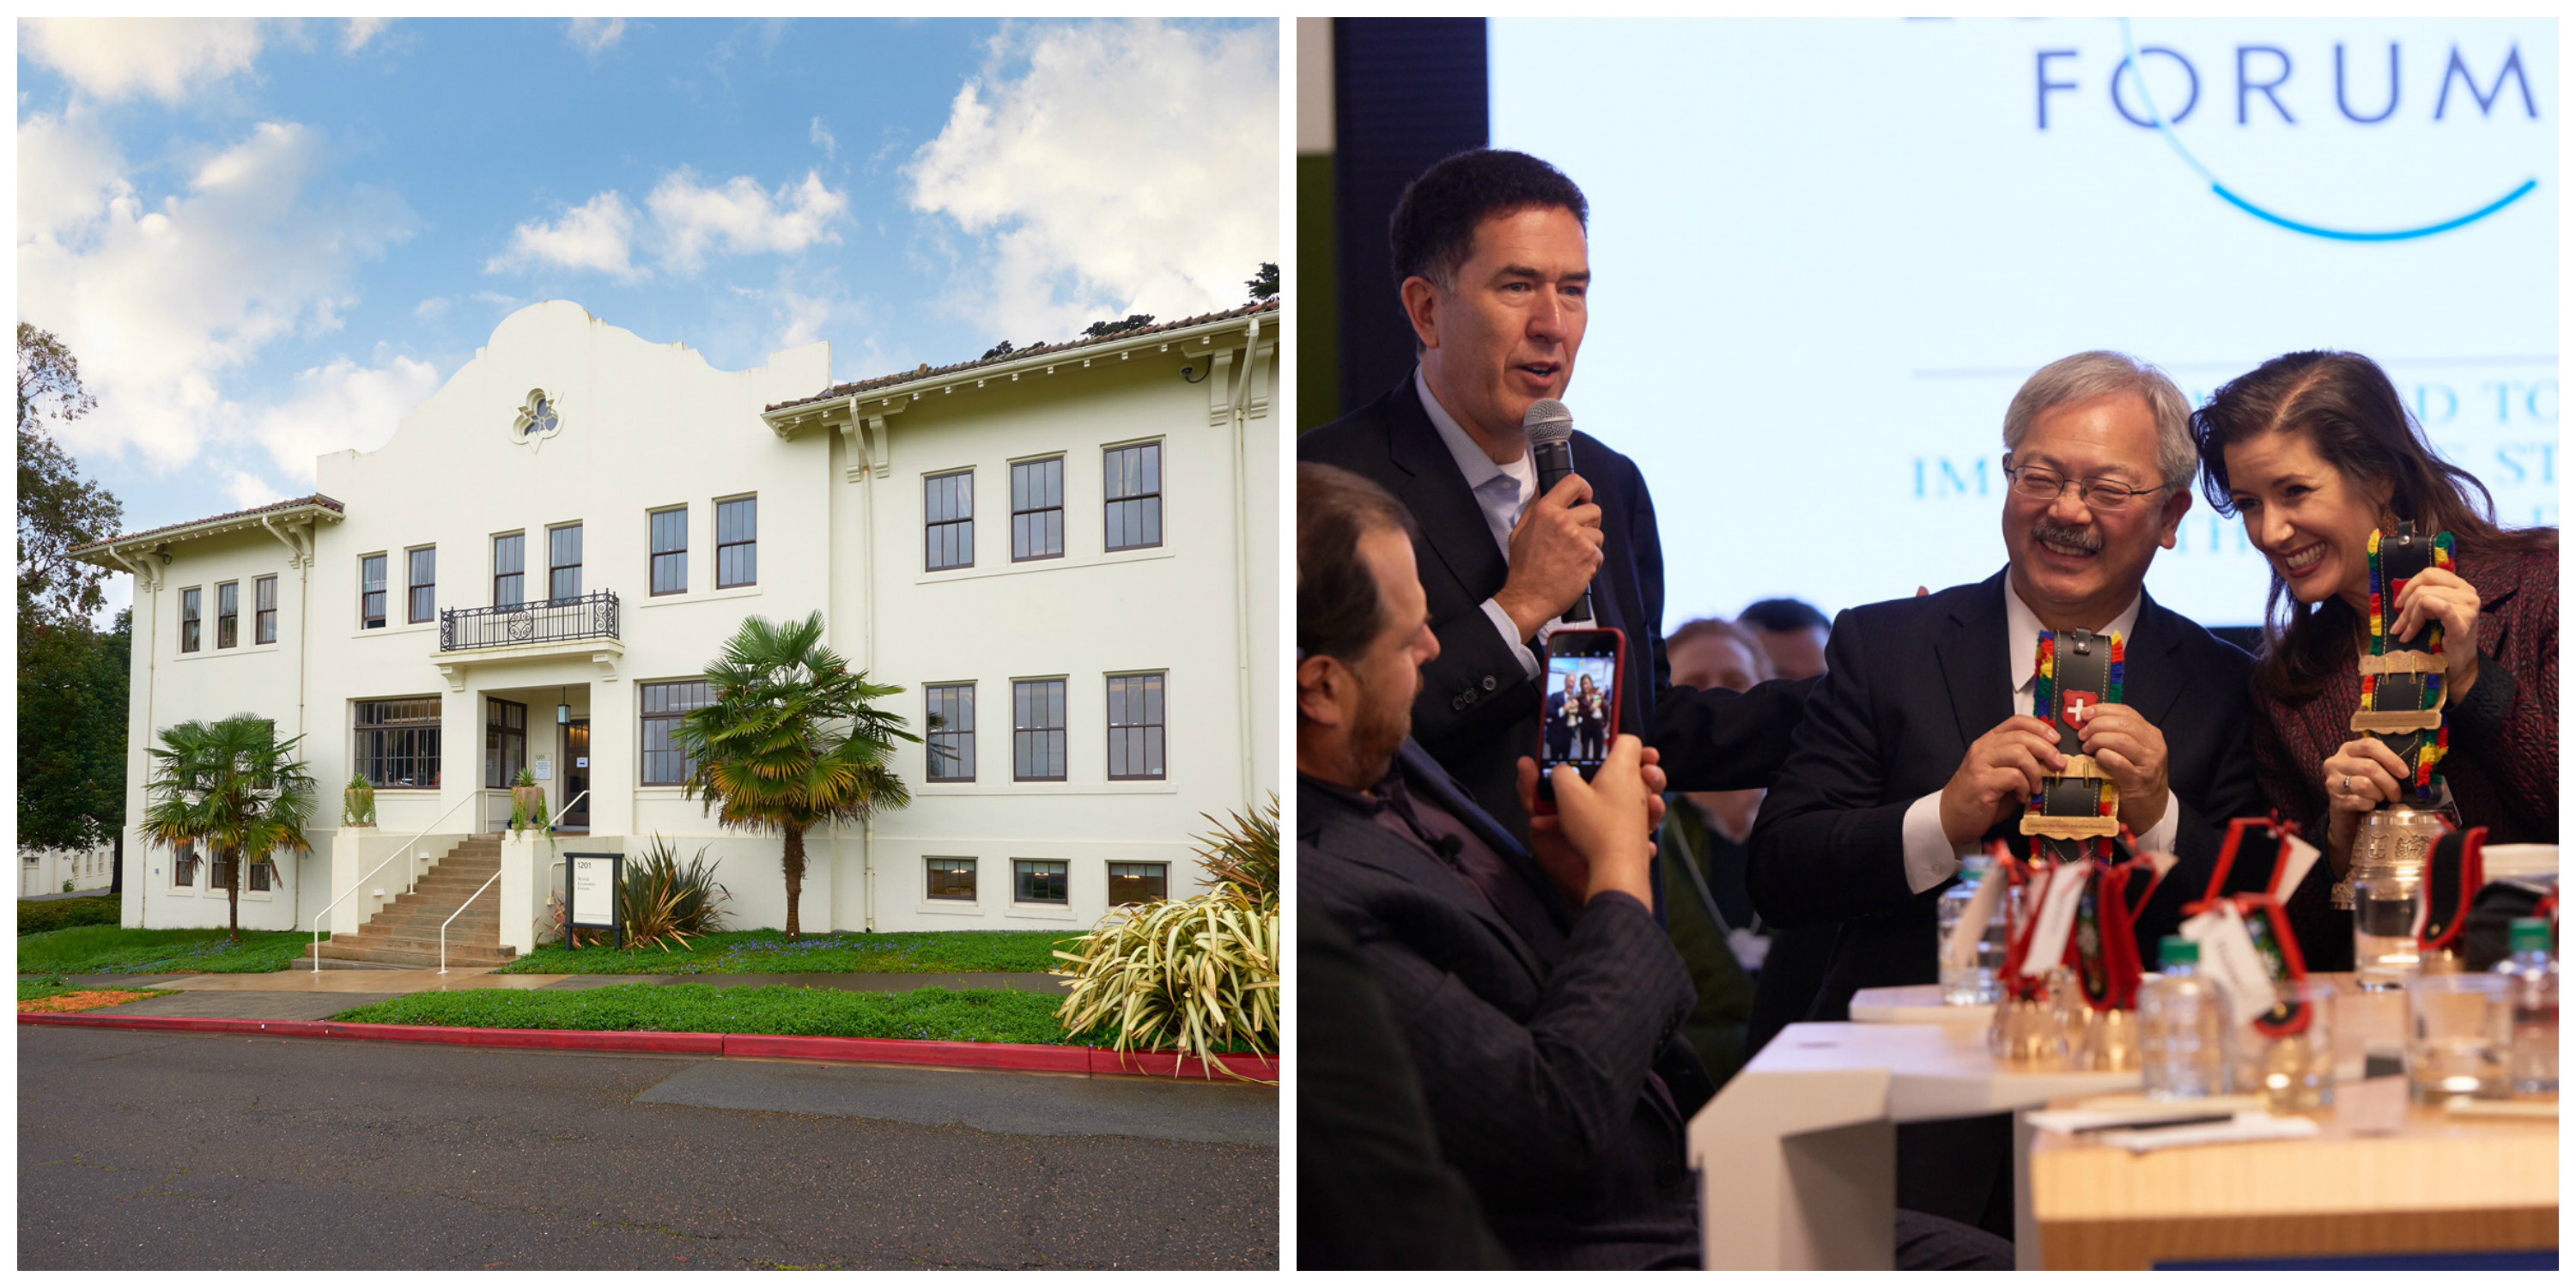 The new Center for the Fourth Industrial Revolution has its offices at the Presidio in San Francisco, and officially opened its doors on March 24